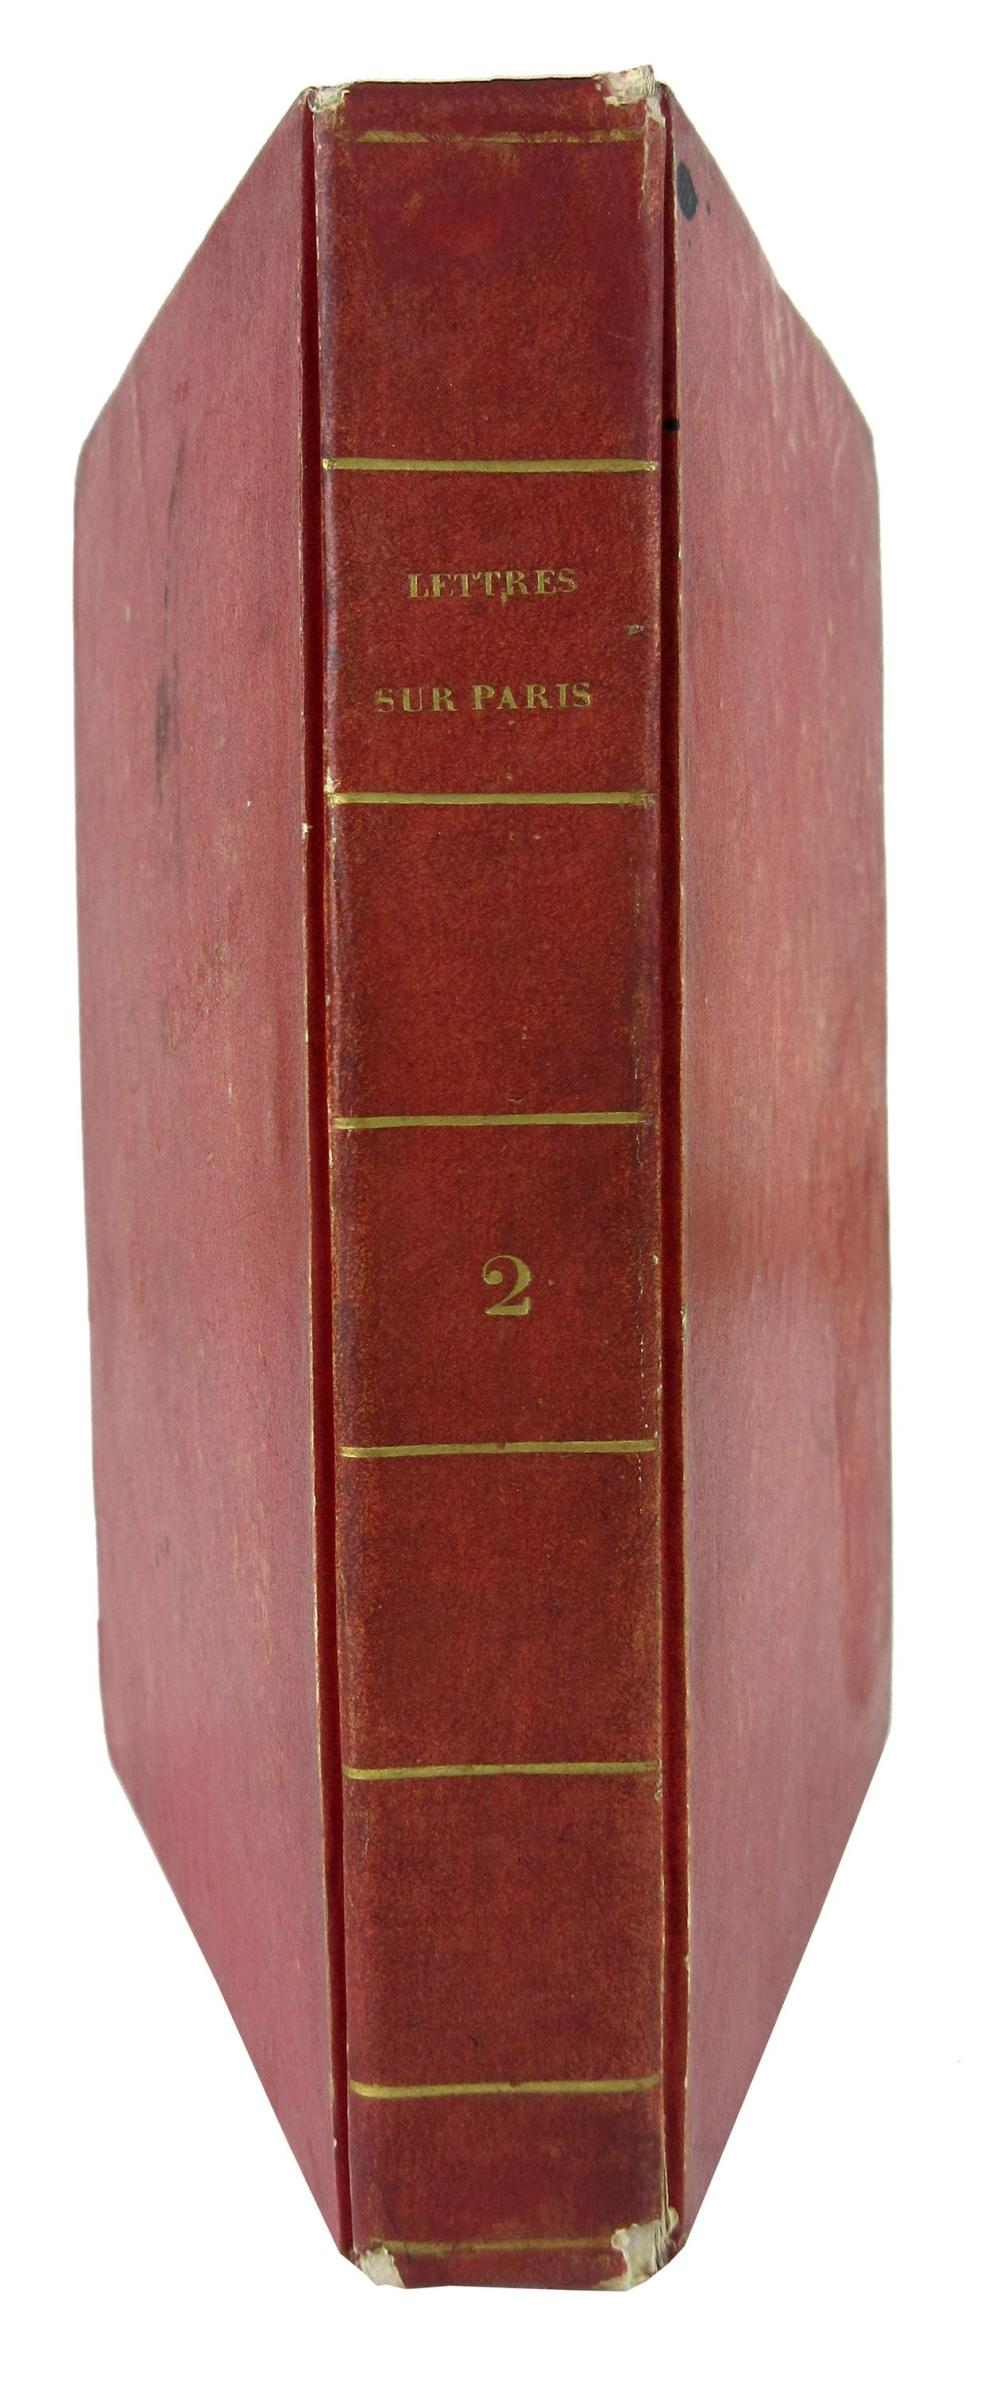 Napoleon's Personally Owned Book from St. Helena, Stamped & Inscribed by Librarian Mameluke Ali, Ex-Nicholson Napoleon Collection